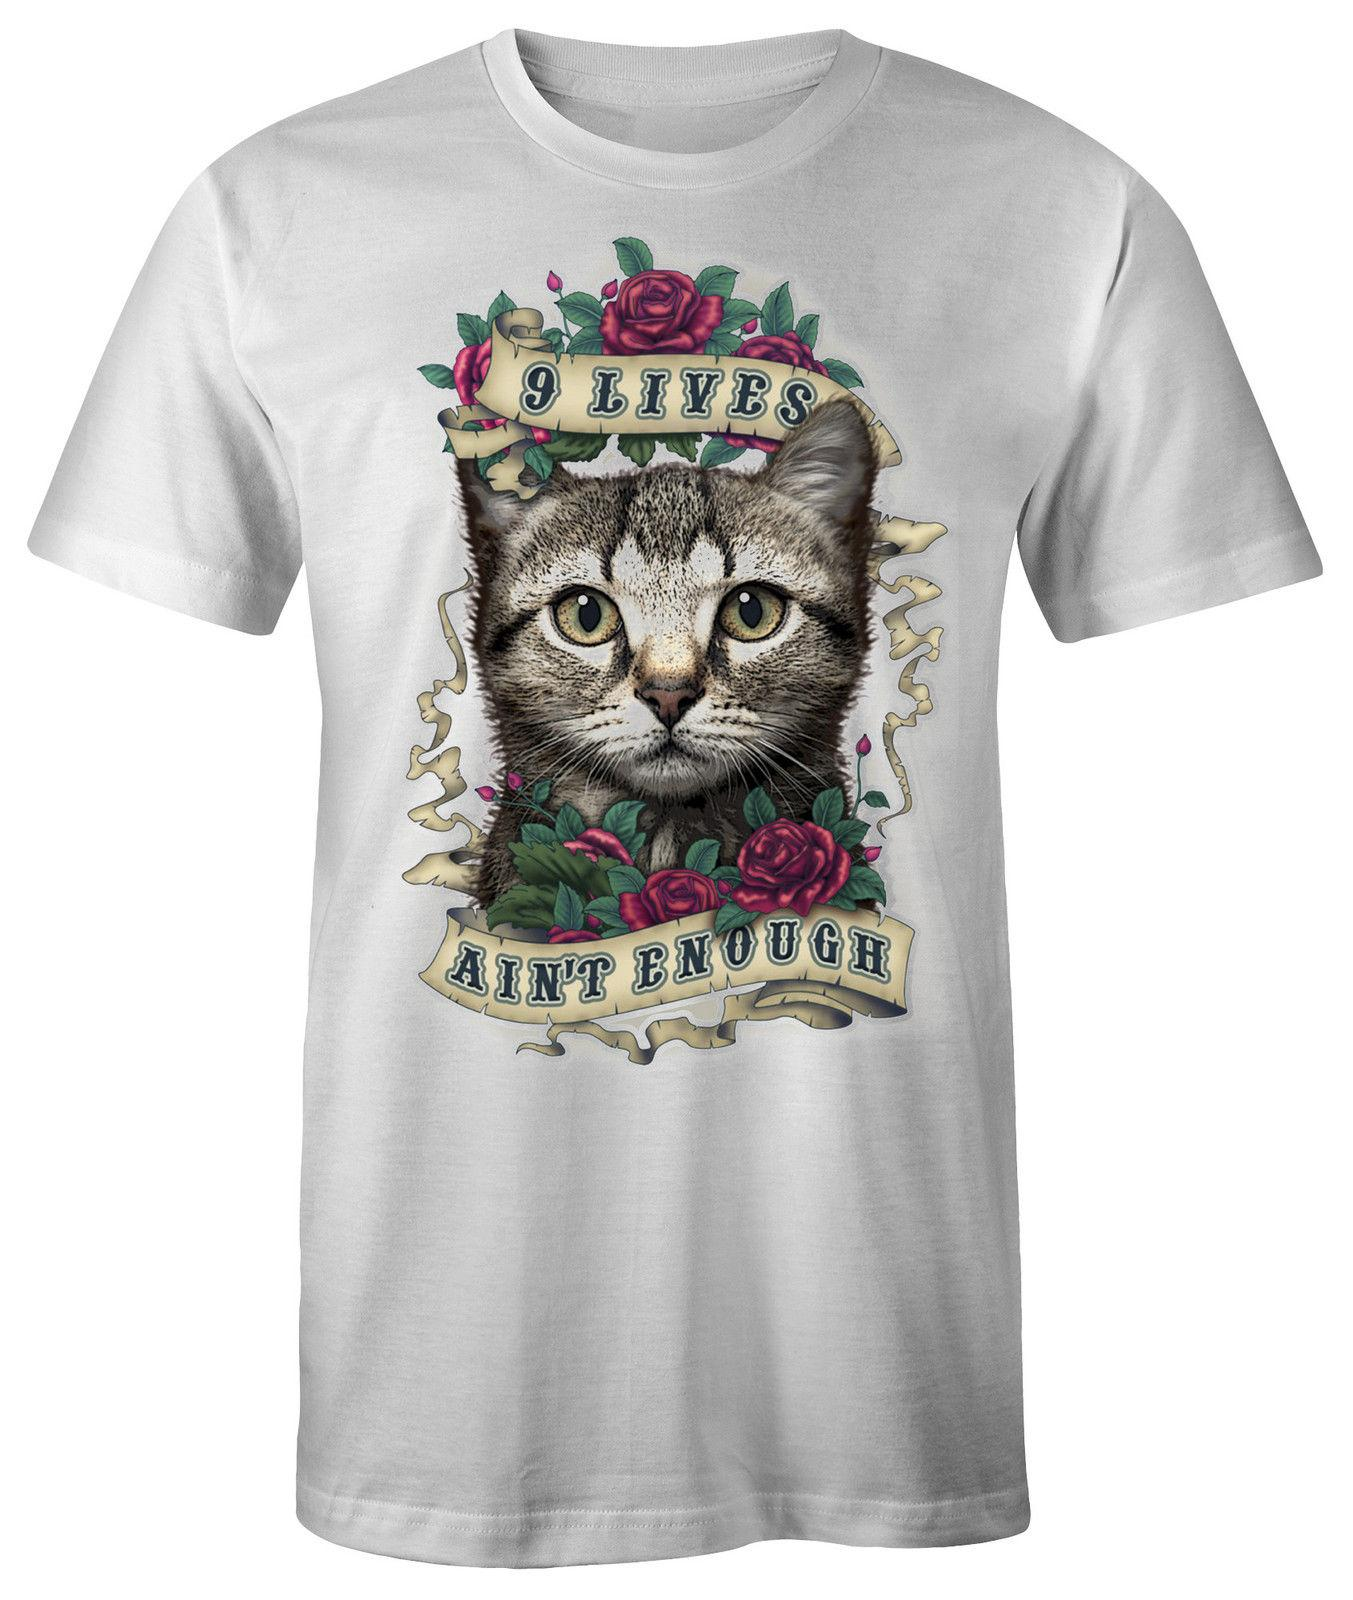 2019 New Sommer-kühle T-Shirt WEISE KINDER T-SHIRT / GR SHIRT PARTY CLUB / KATZE